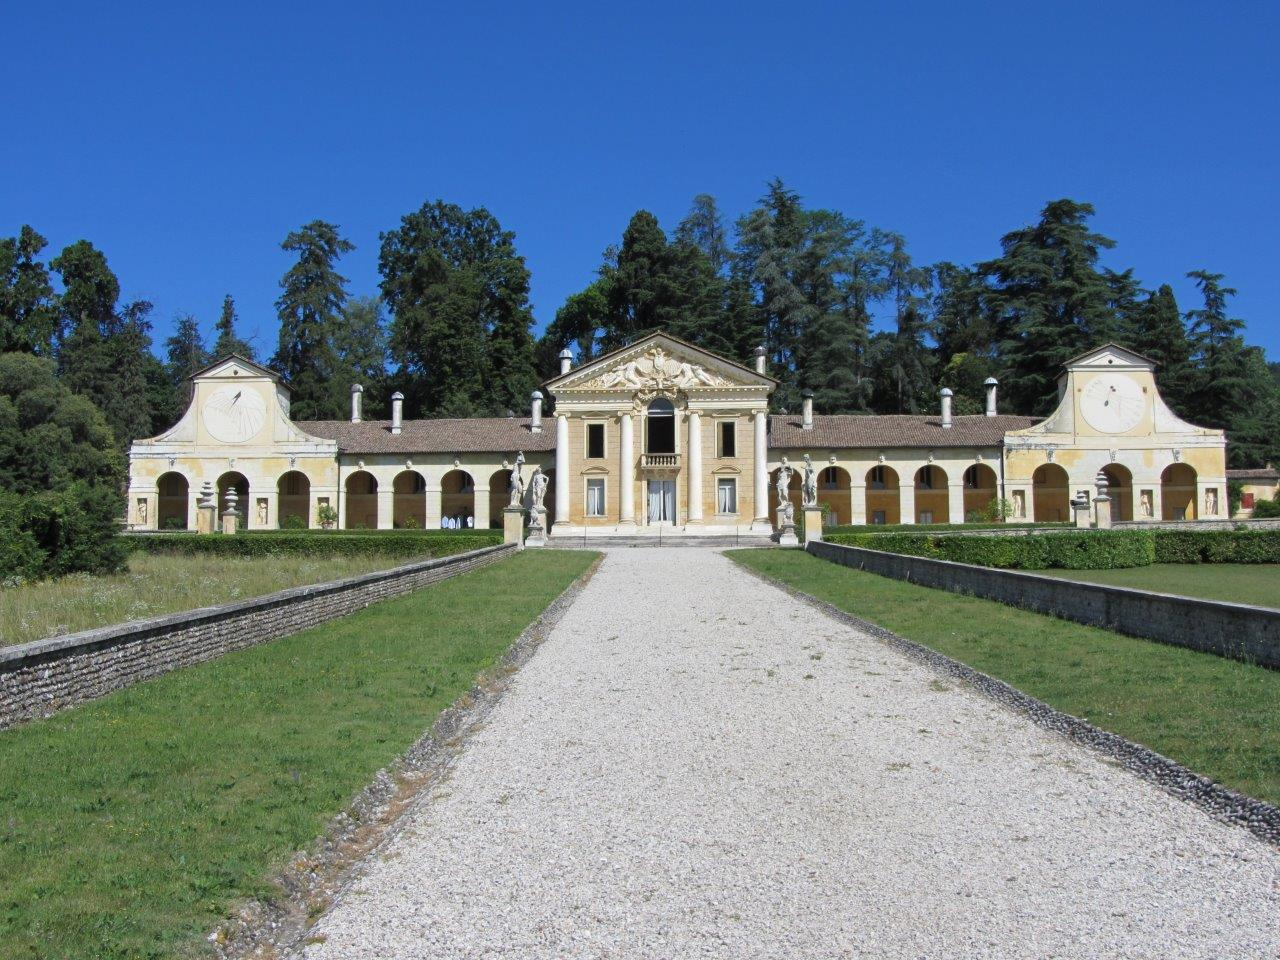 Villa Barbaro, Maser - front facade demonstrating perfect Palladian symmetry